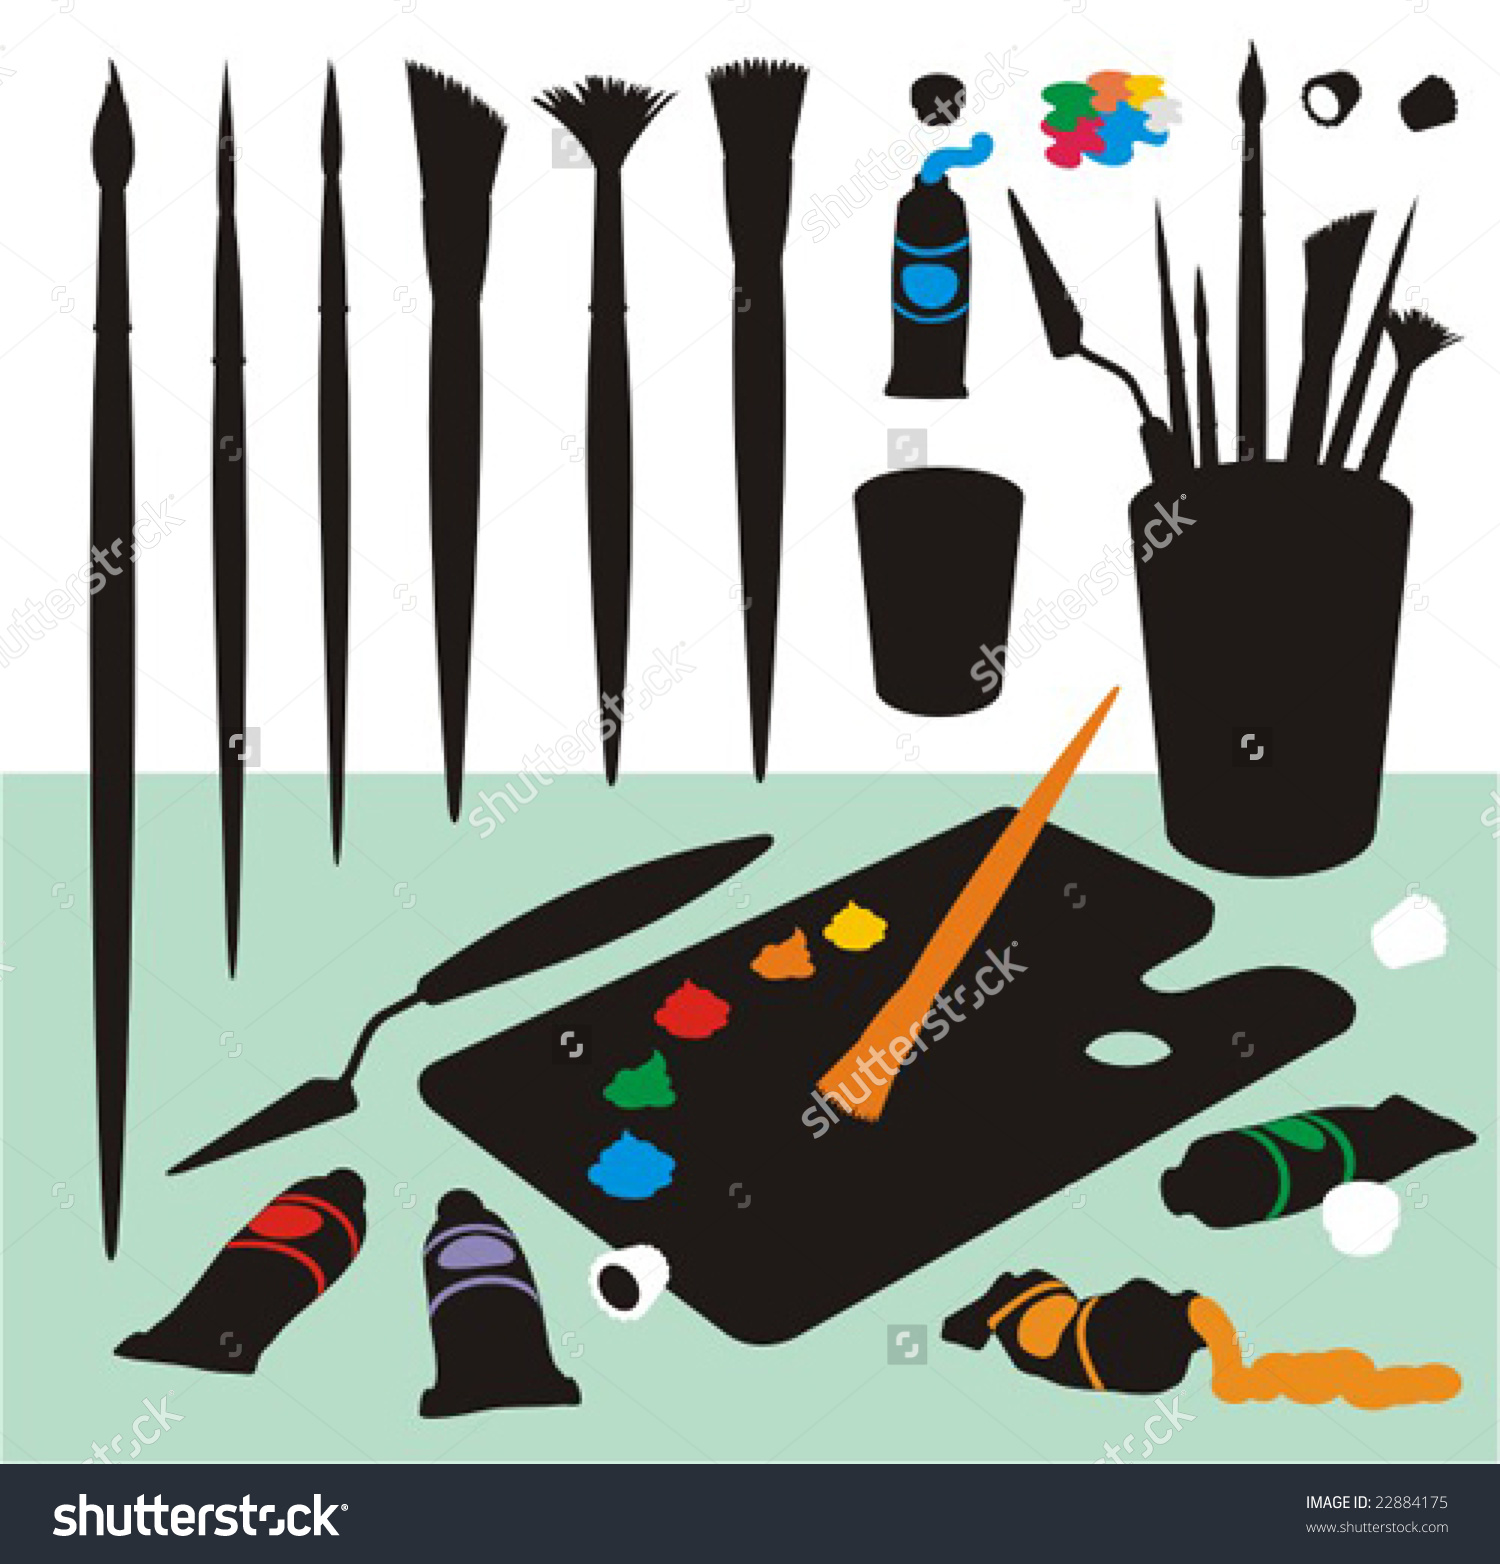 Clip Art Collection With Paintbrushes, Palette, Spatula,Kinife.